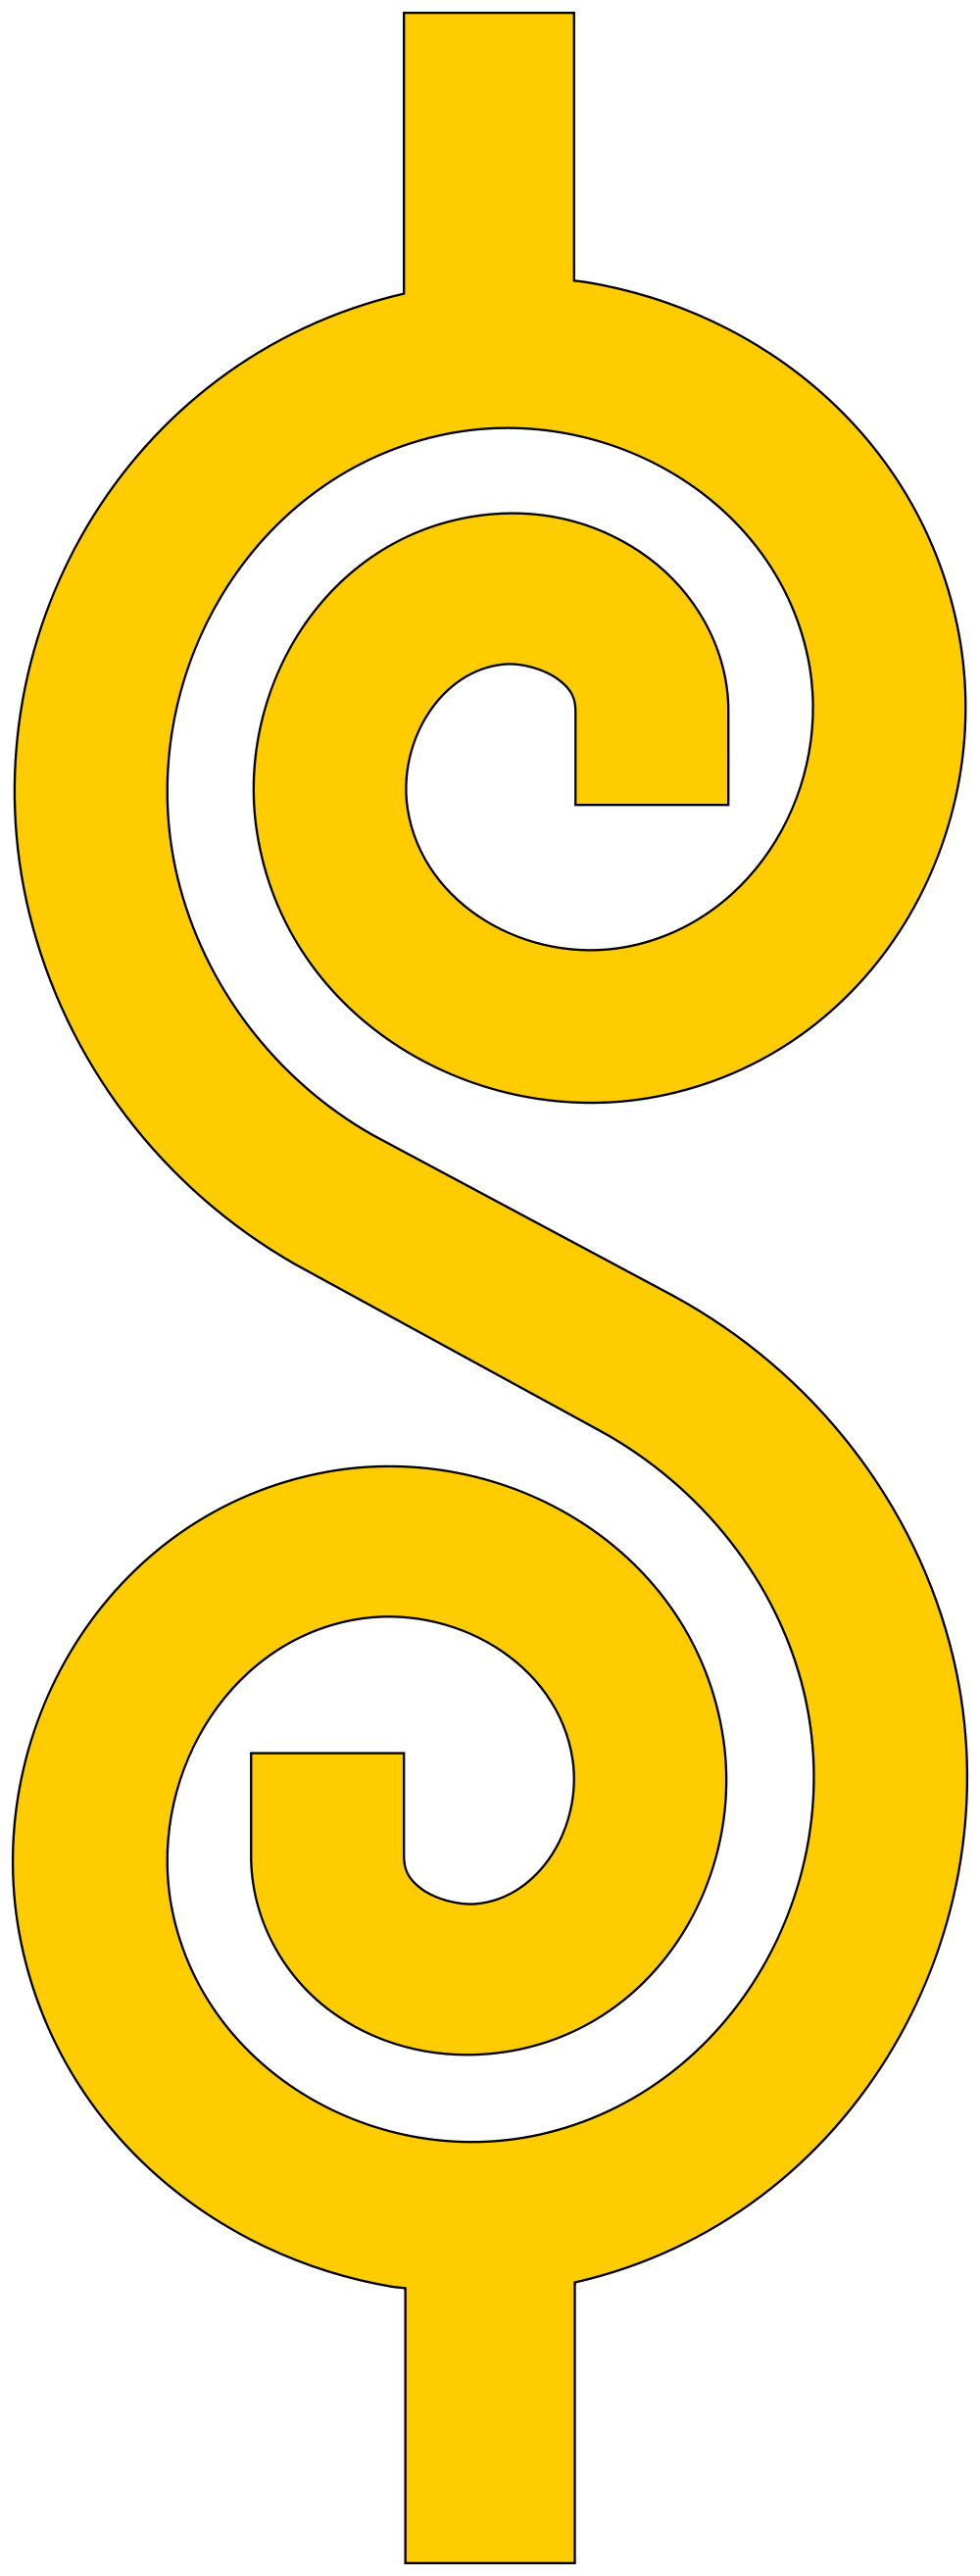 Yellow dollar sign png. File tpir svg wikimedia